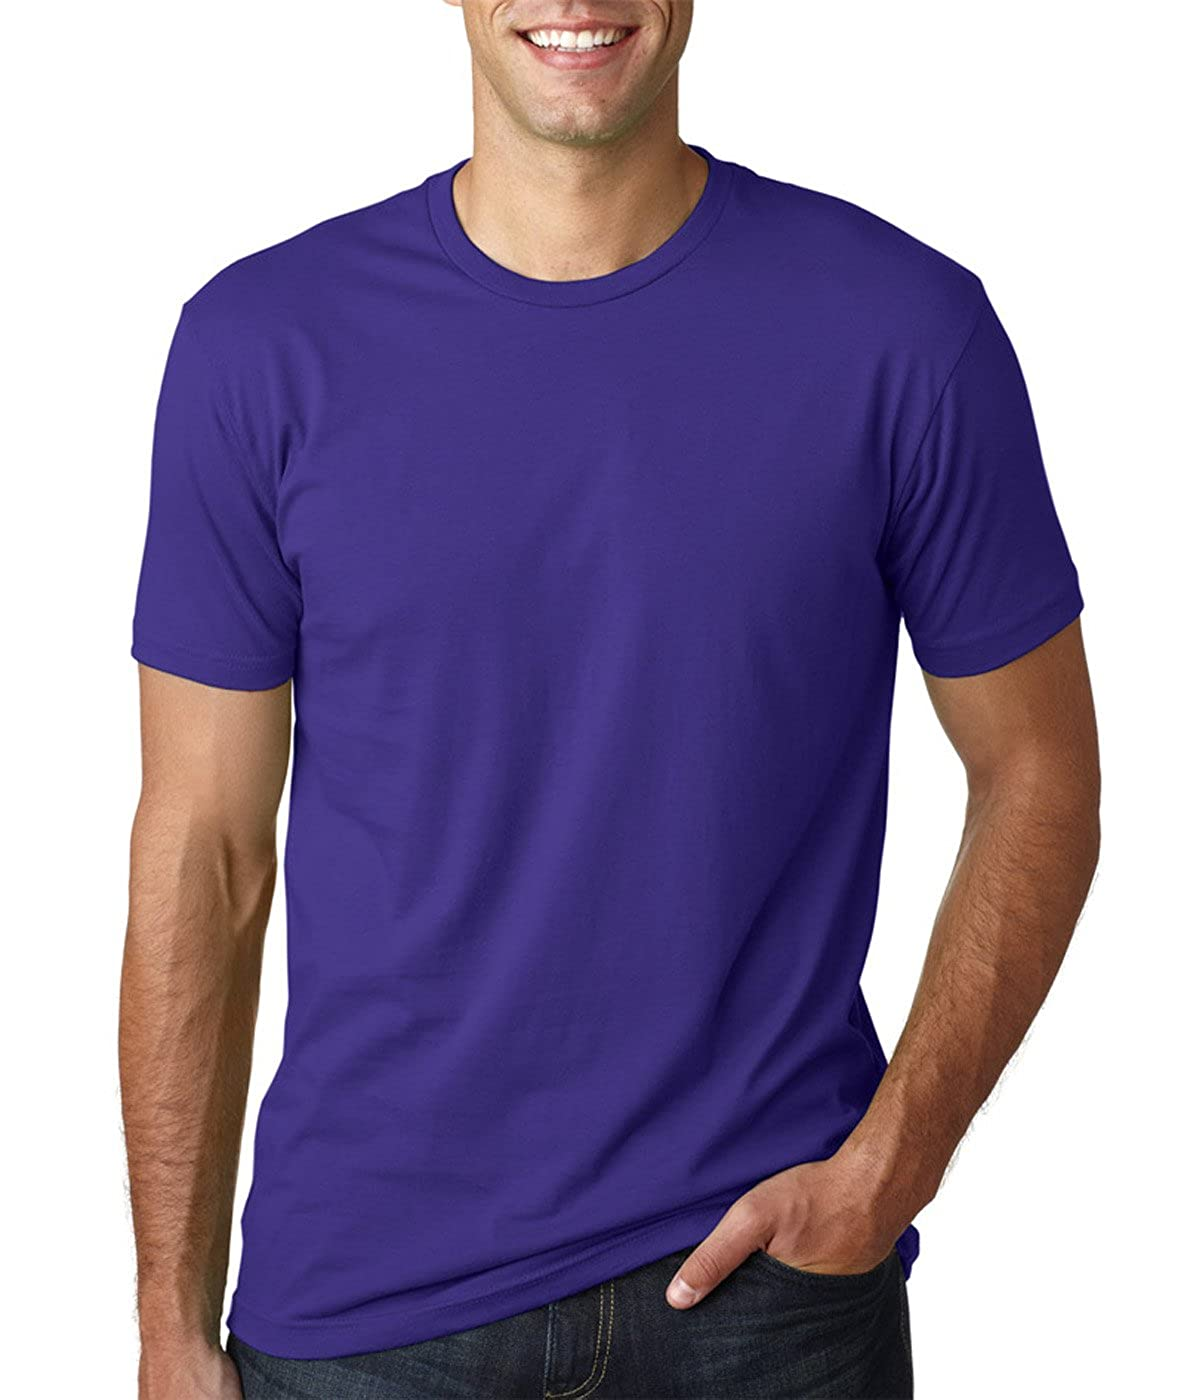 Black 2 Pack Next Level Mens Premium Fitted Short-Sleeve Crew T-Shirt - Small Purple Rush